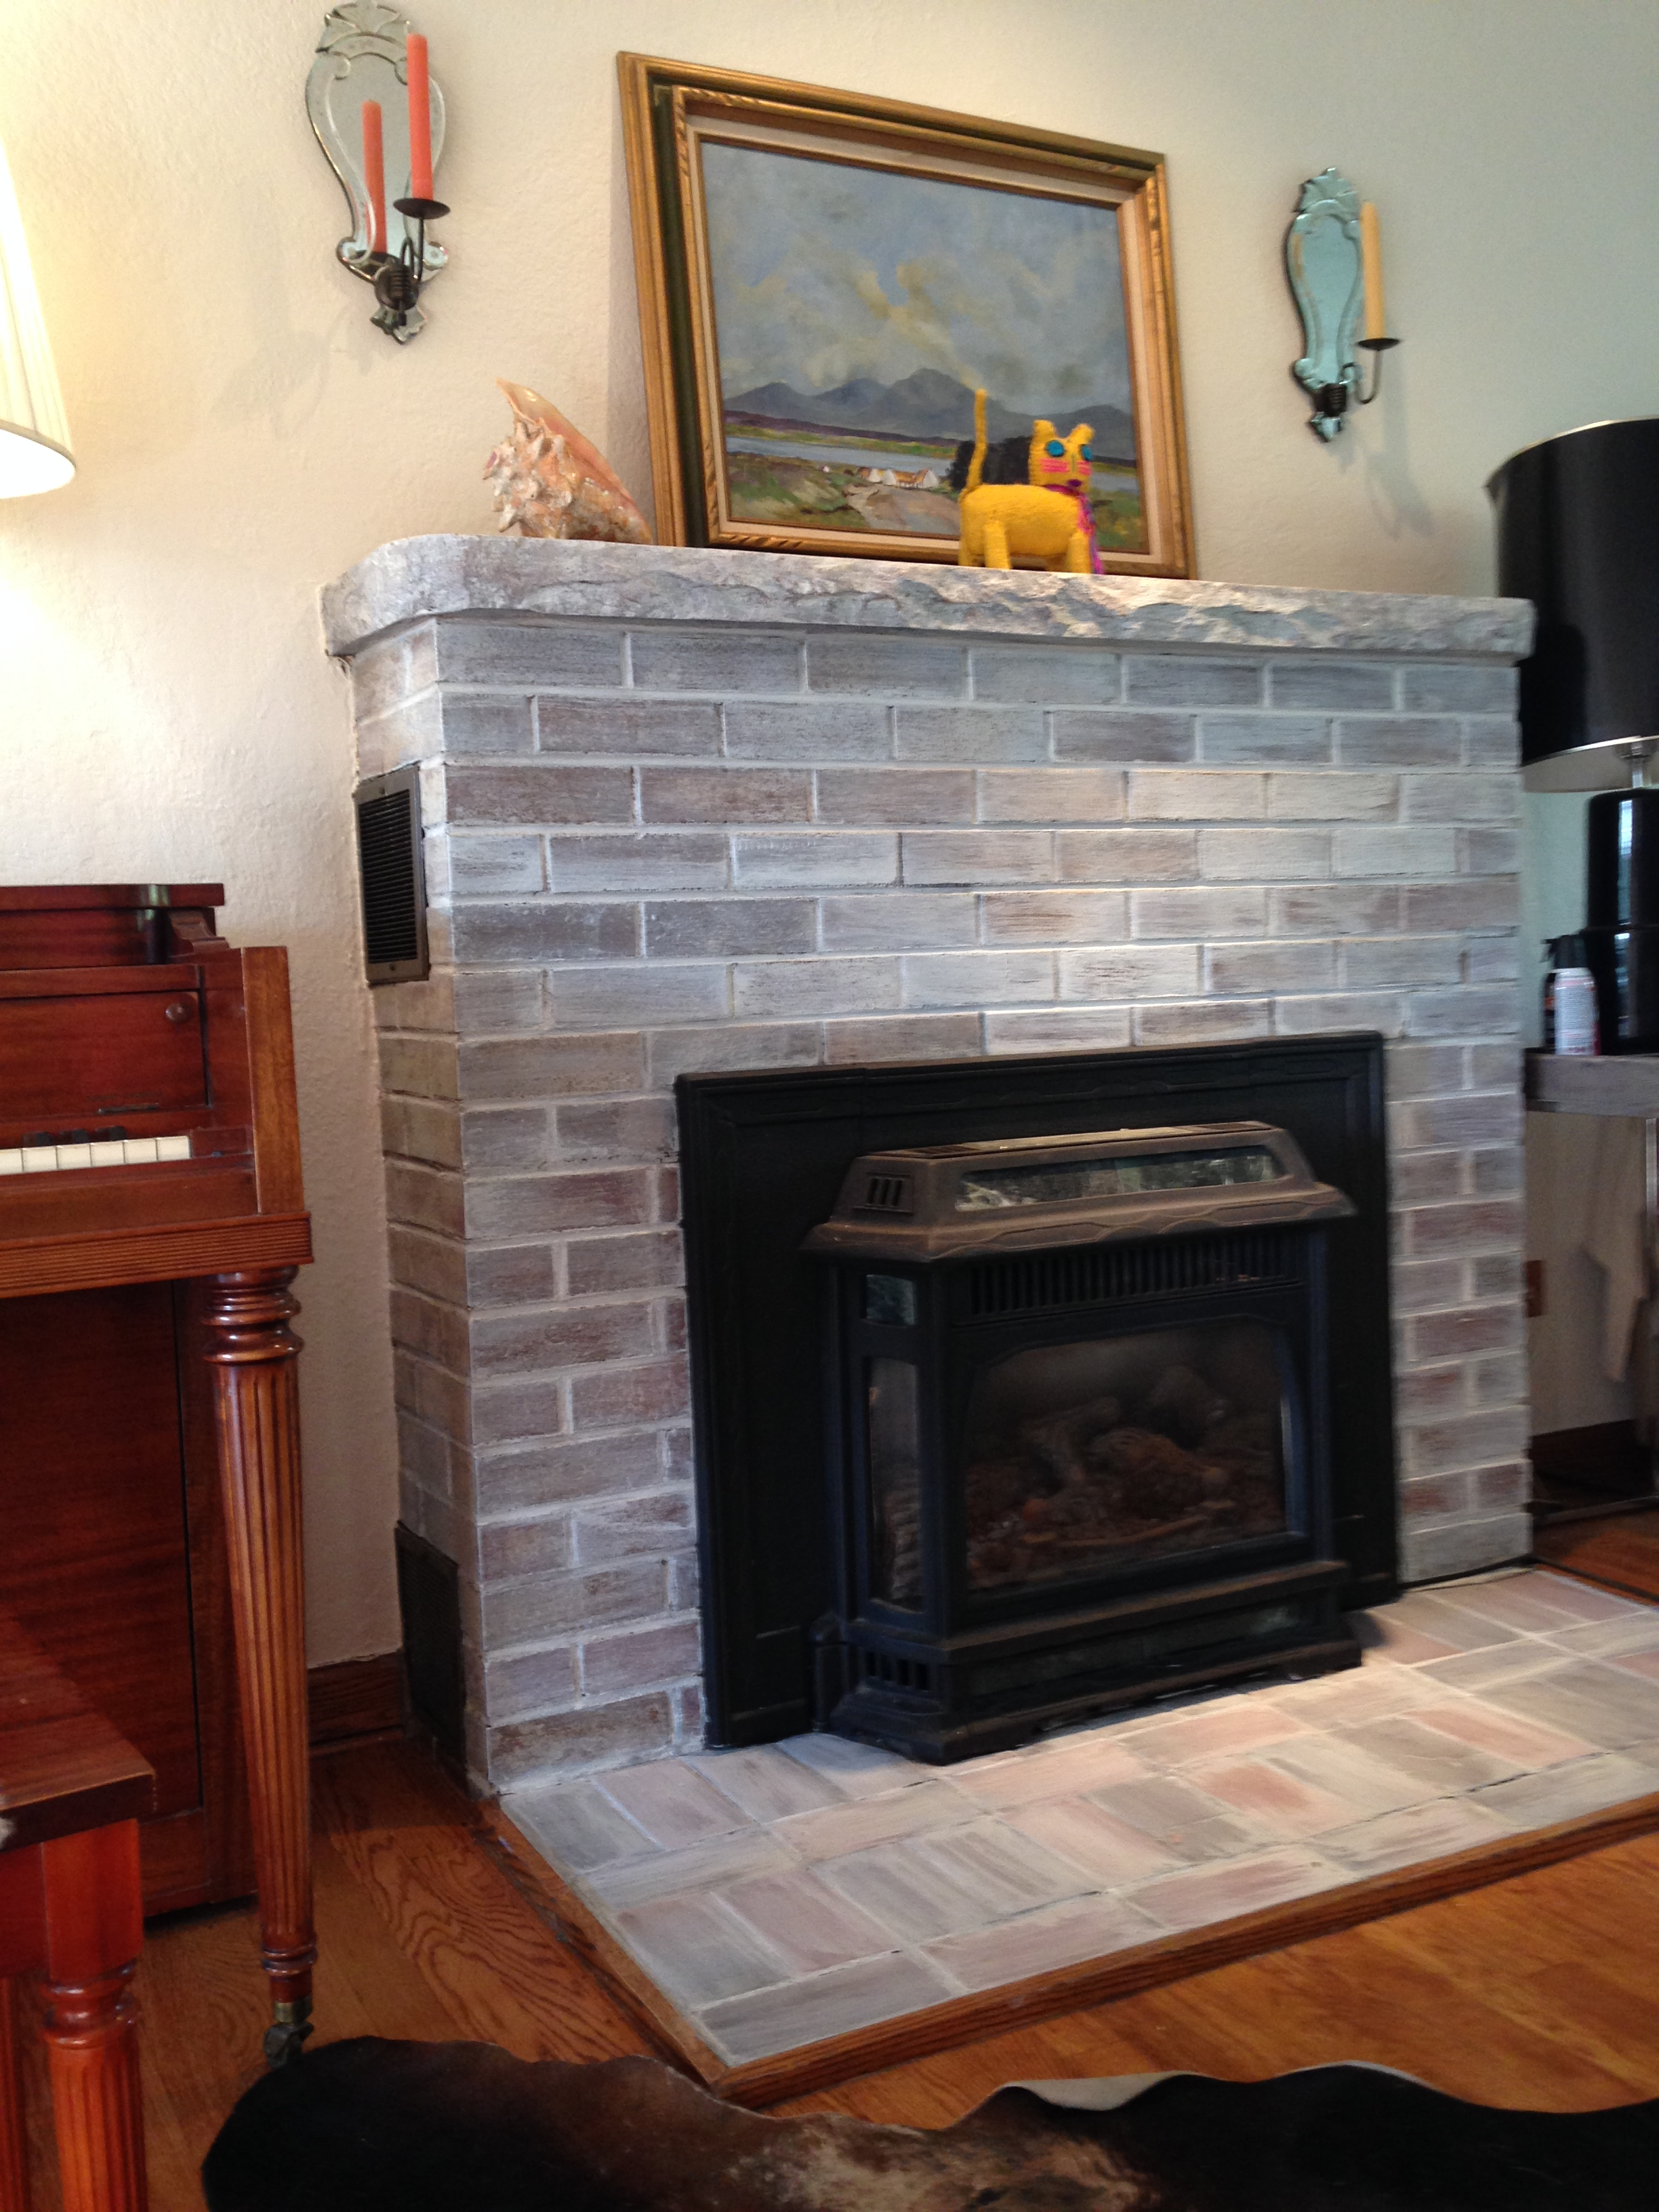 Whitewash Fireplace Before And After The Hopeful Brick Fireplace Part 1 The Colorado Nest